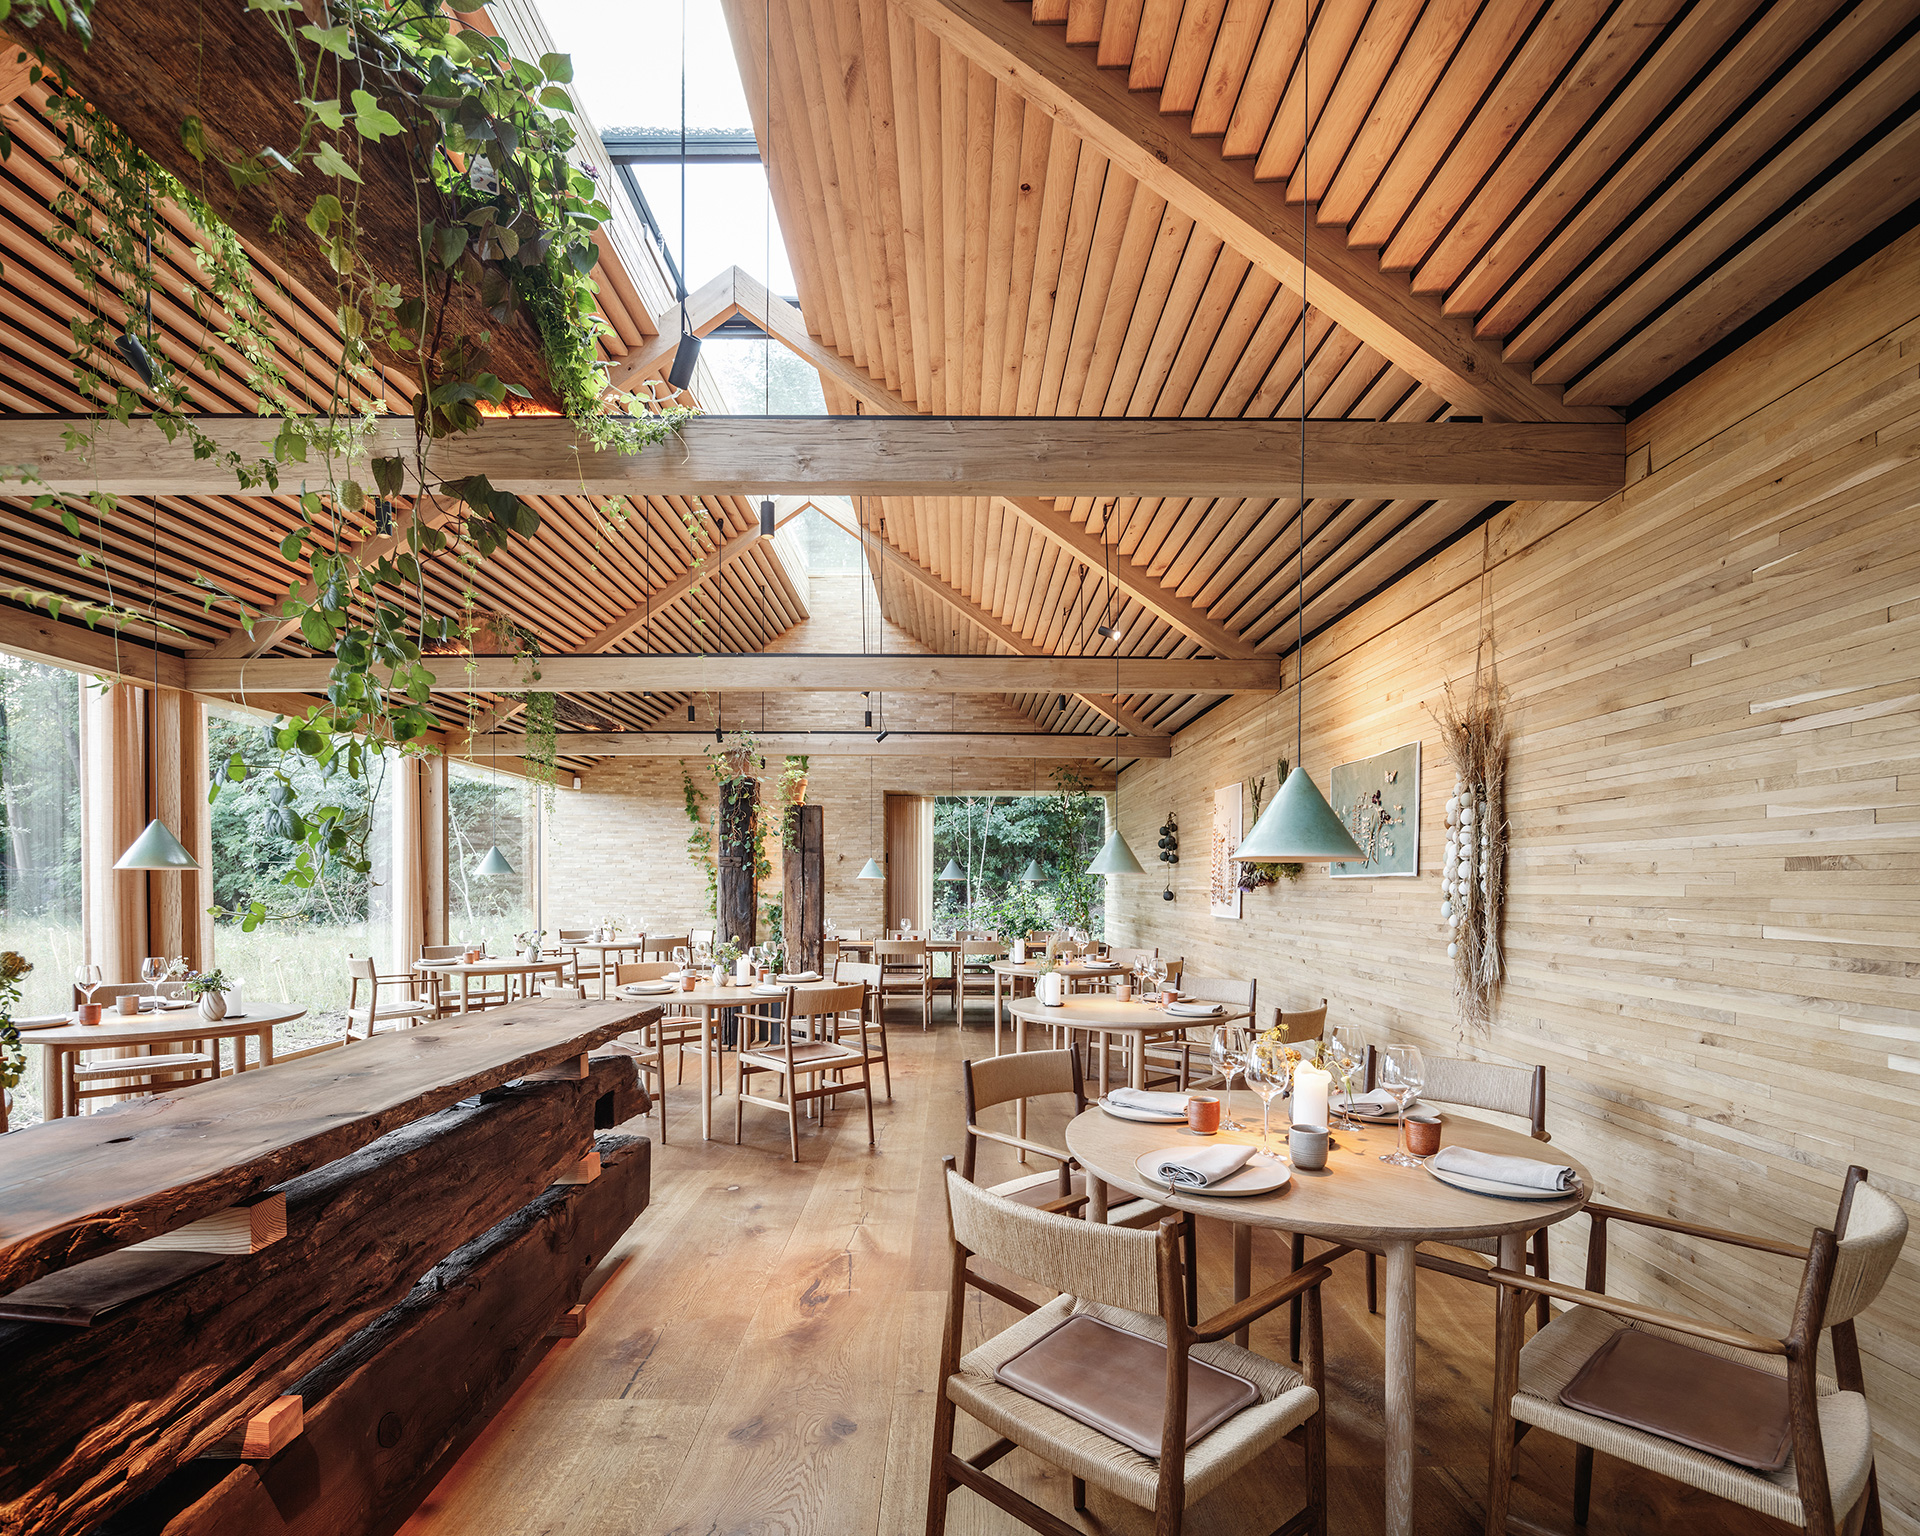 Winner of the INSIDE- Bars and restaurants' – Noma by BIG Architects | World Architecture Festival 2019 | INSIDE World Festival of Interiors 2019| STIRworld